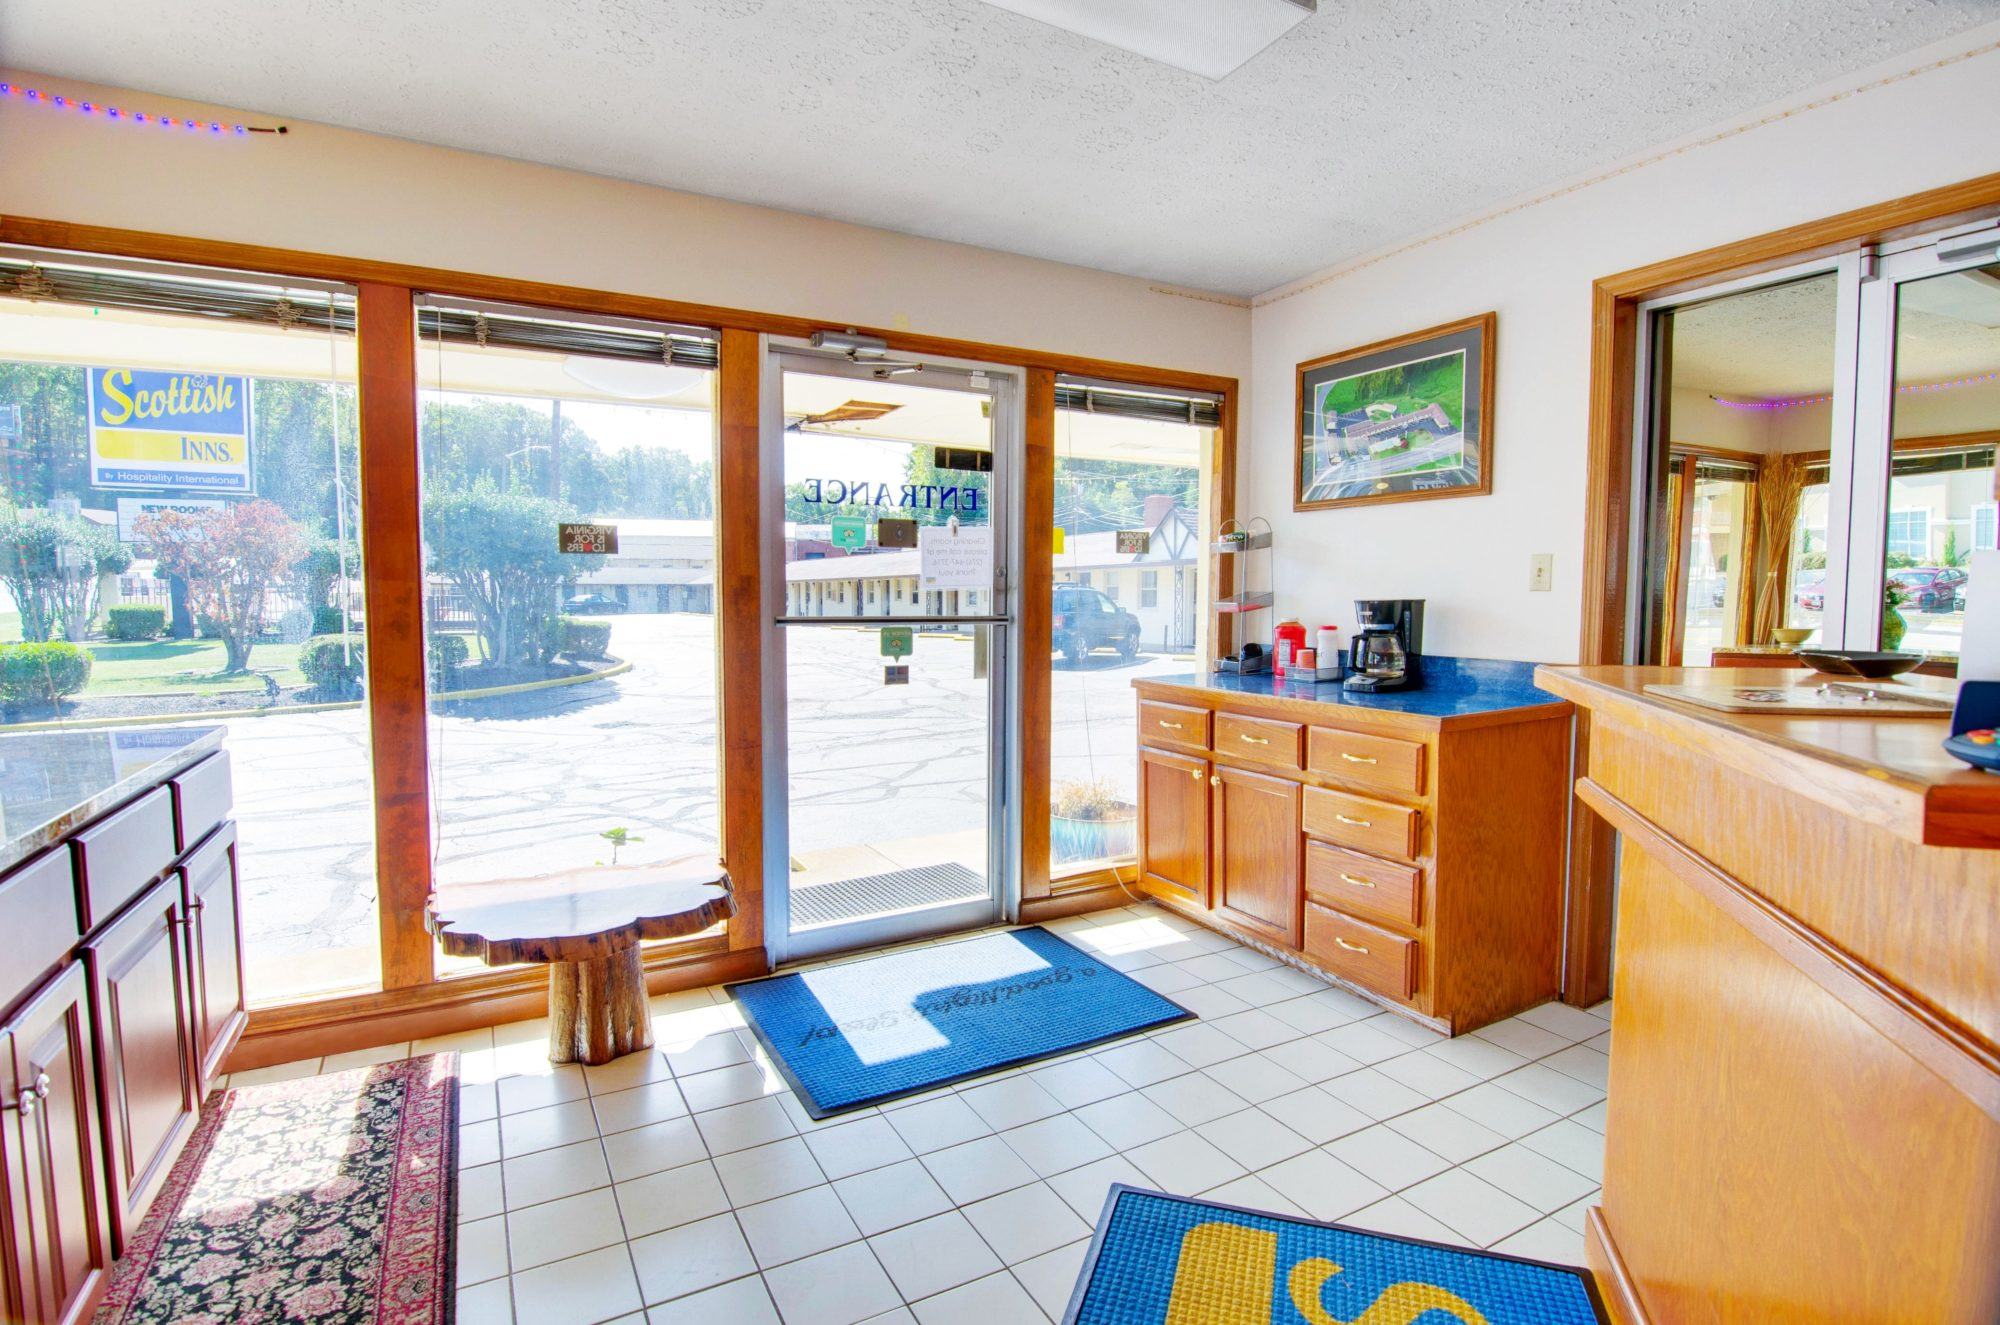 Guest check in desk , counter with coffee pot, occasional talbe, tiled flooring with rug